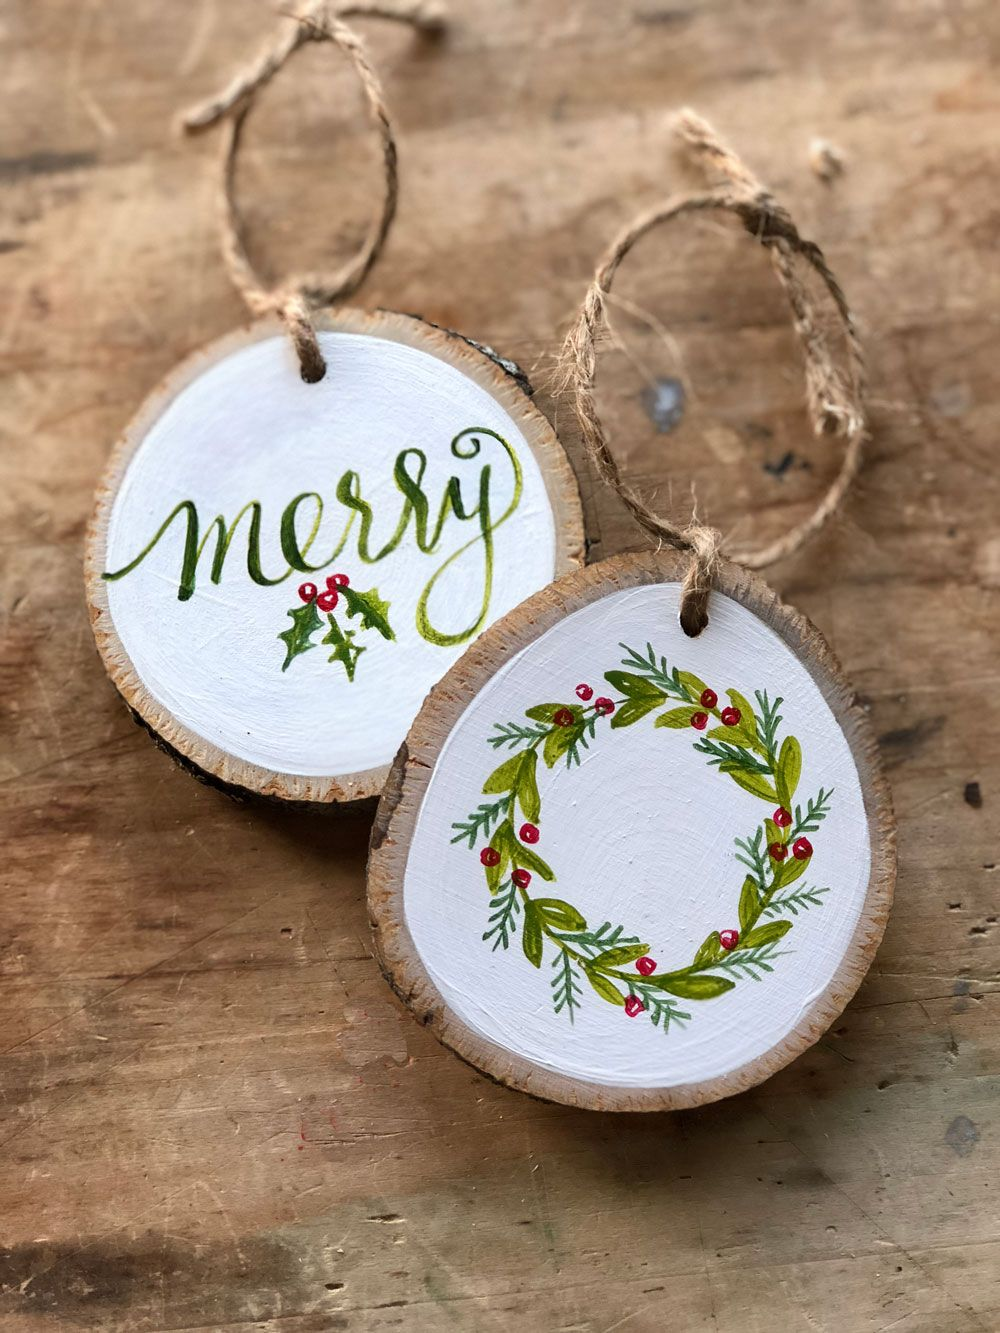 Learn How to Paint Your Own Hand Painted Christmas Wreath